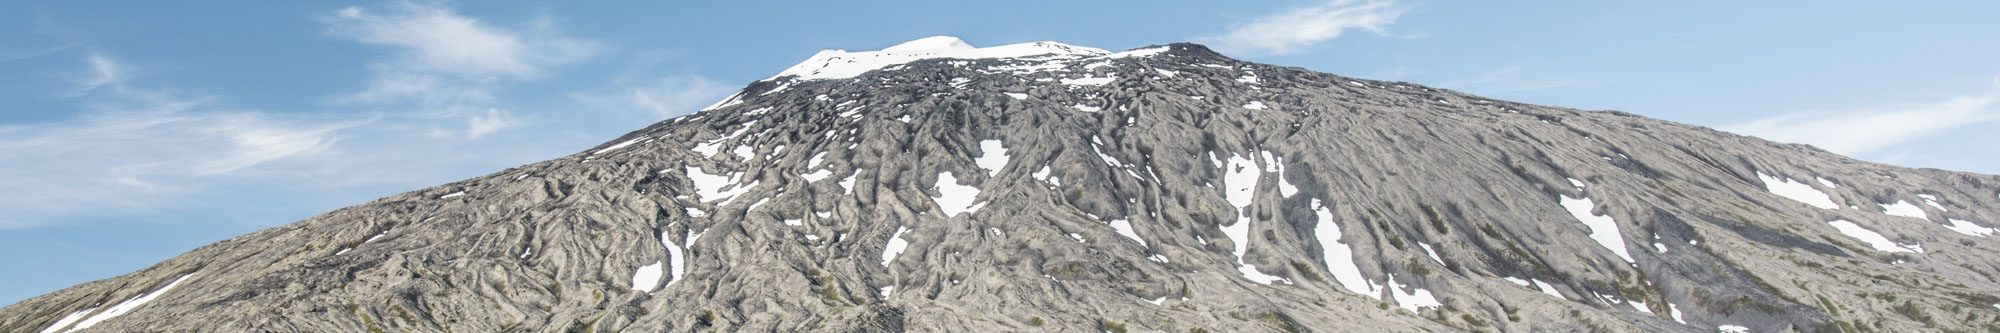 Snaefellsjokull National Park